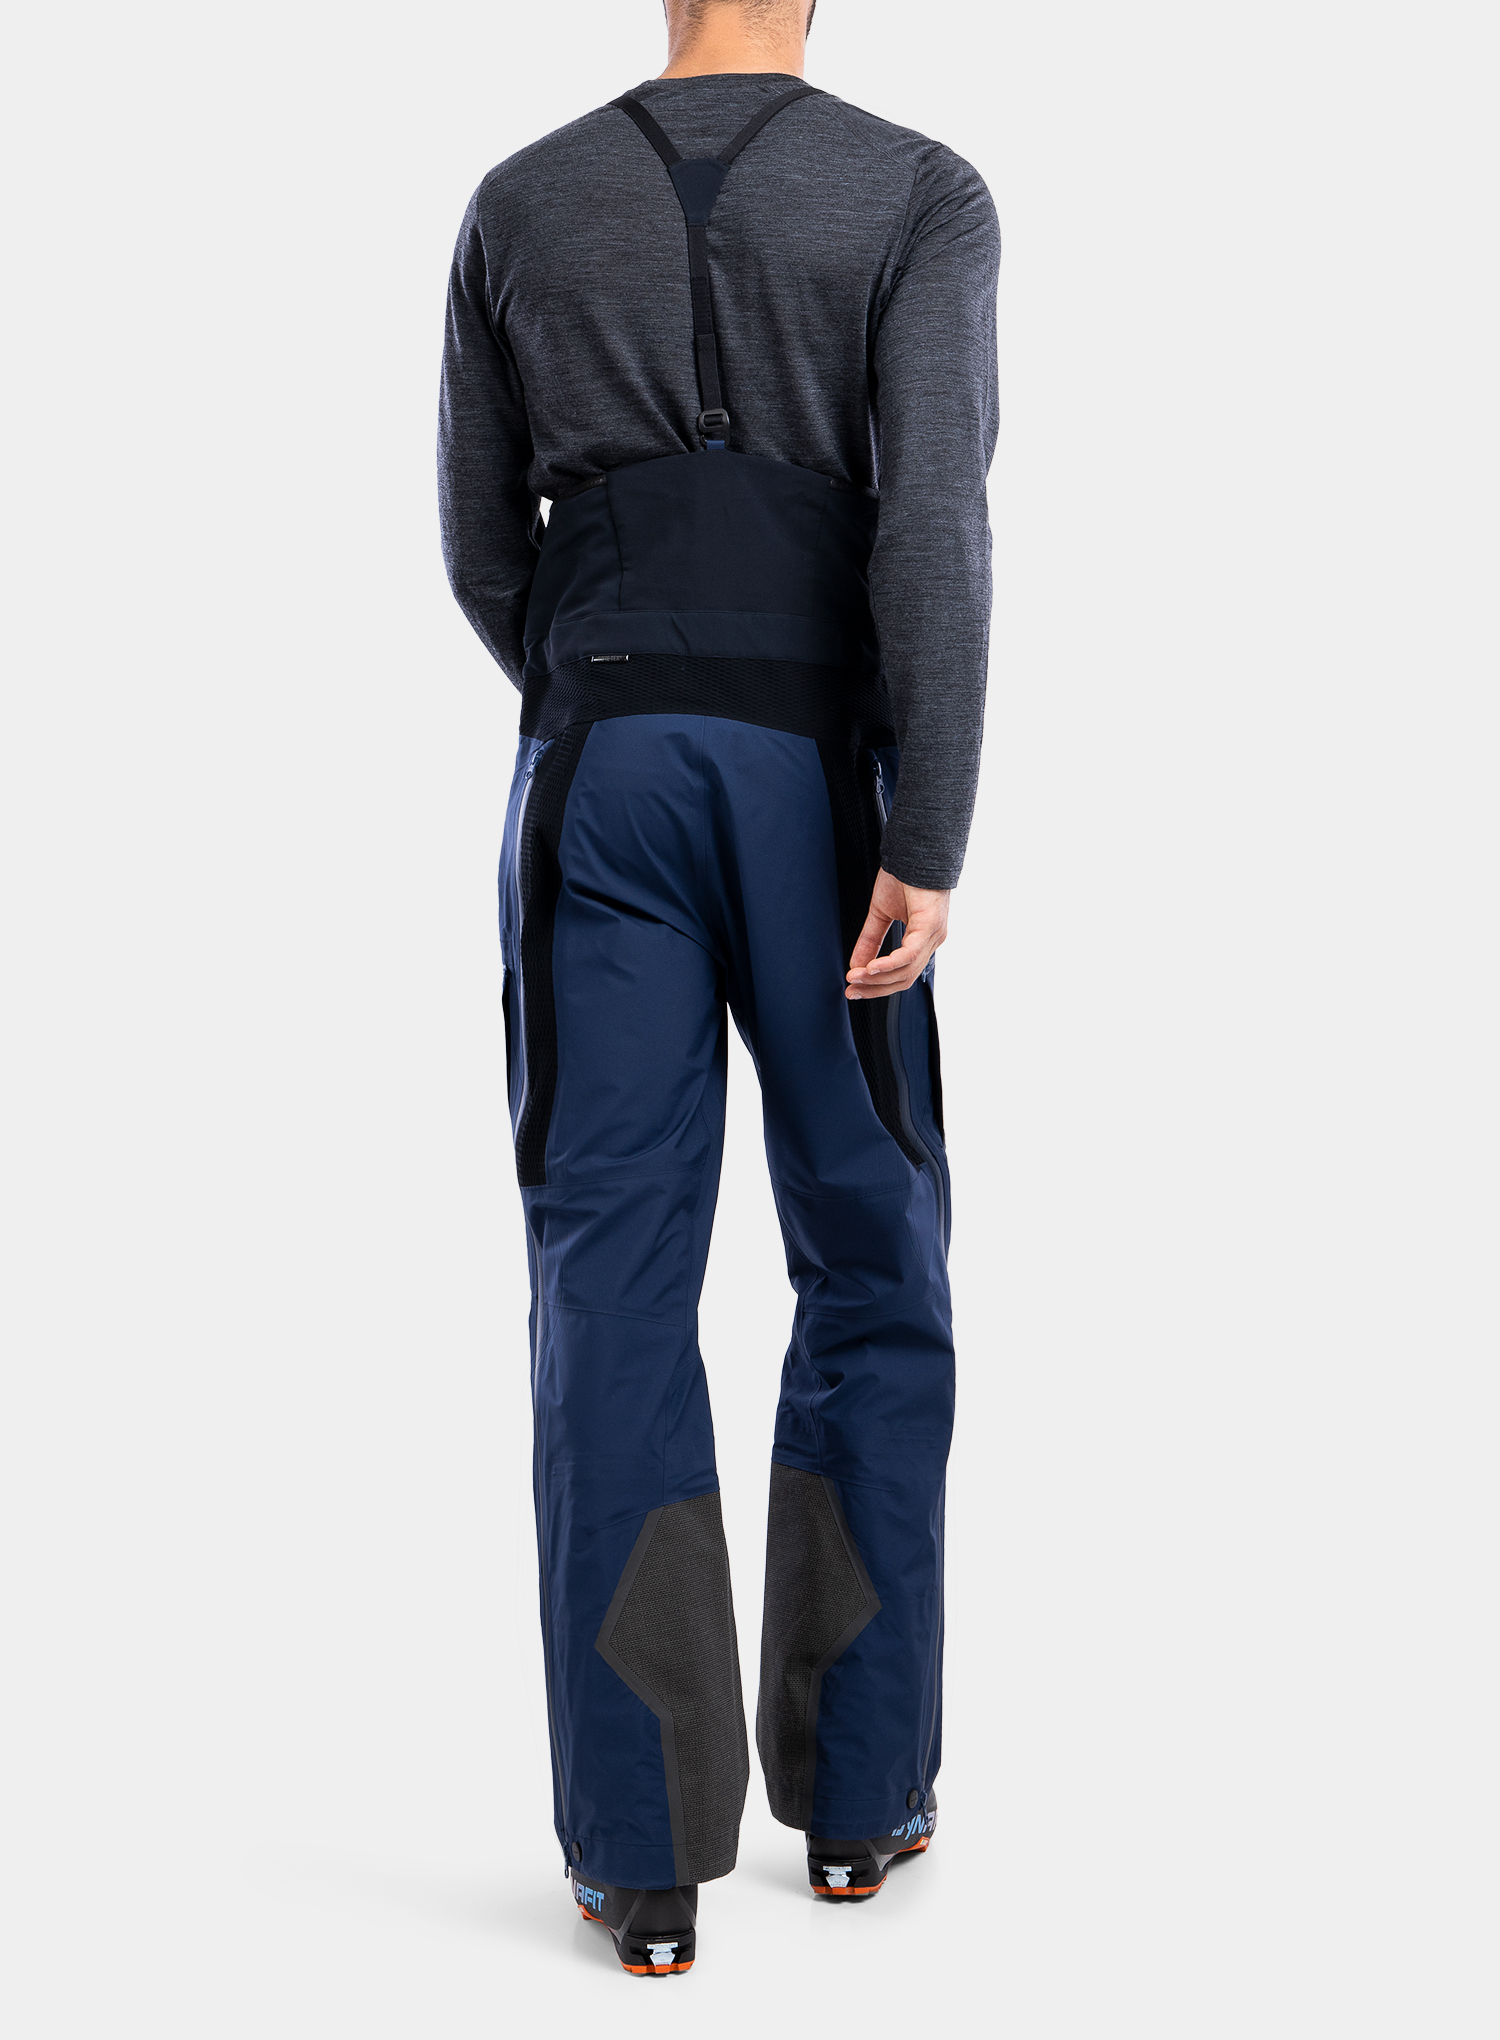 Spodnie GORE-TEX BlackYak Brangus Pants - dress blues - zdjęcie nr. 2